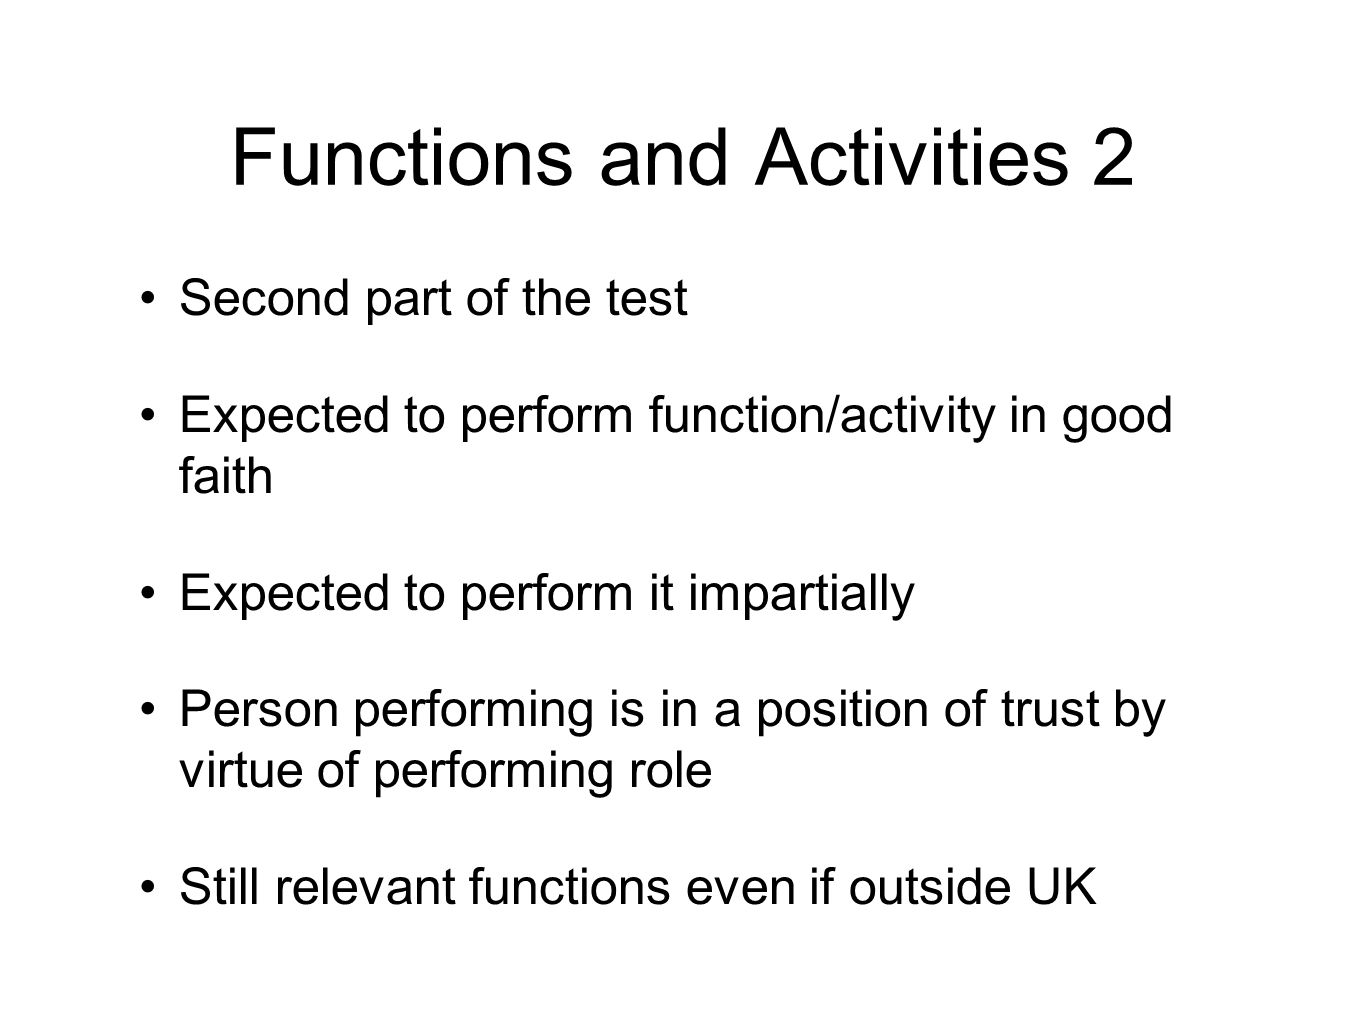 Functions and Activities 2 Second part of the test Expected to perform function/activity in good faith Expected to perform it impartially Person performing is in a position of trust by virtue of performing role Still relevant functions even if outside UK